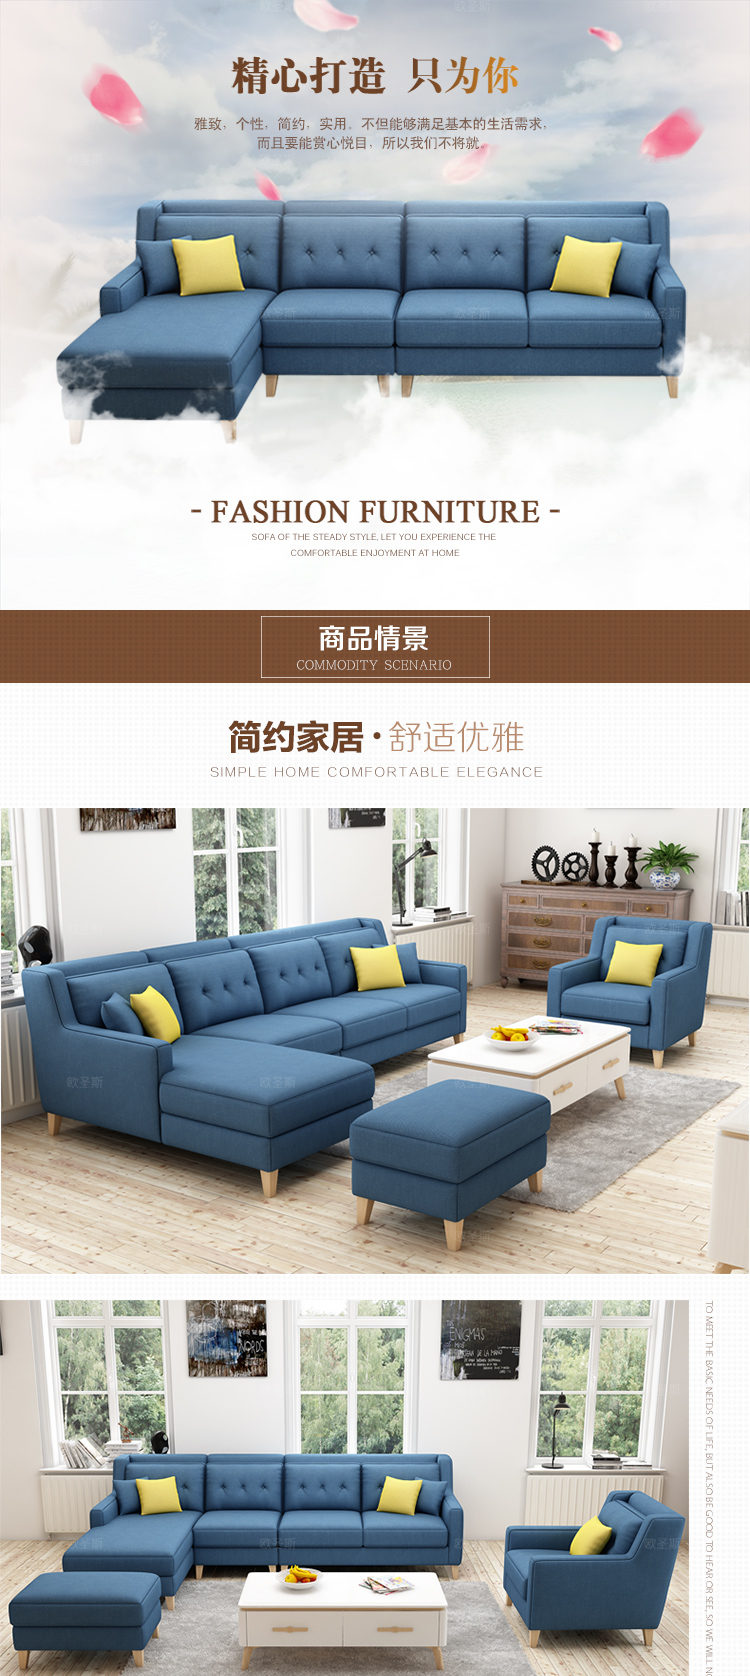 List Of Living Room Furniture. New arrival American style simple latest design sectional l shaped corner living  room furniture fabric sofa set prices list F76F Online Shop